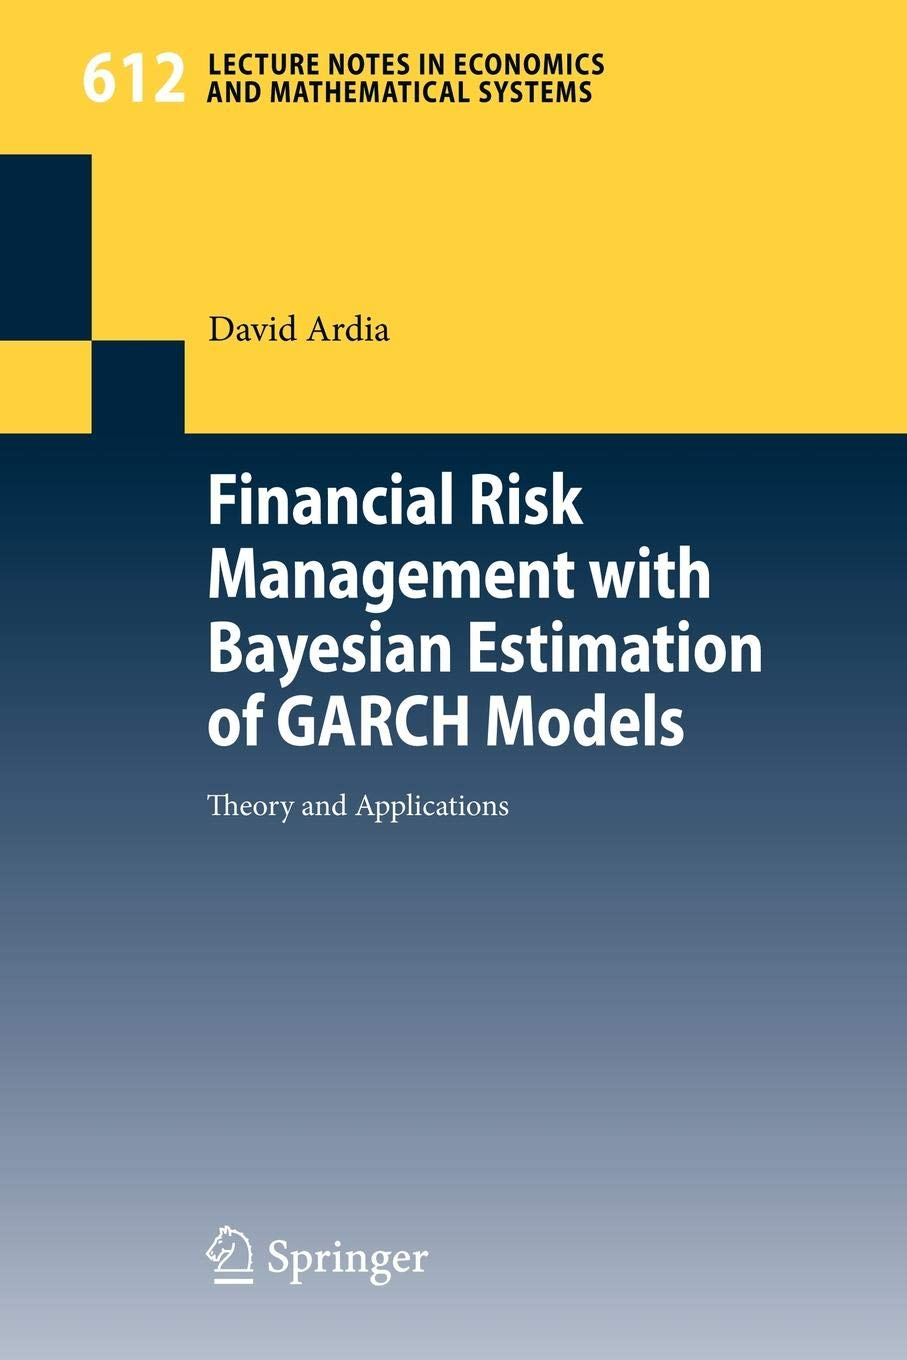 Financial Risk Management with Bayesian Estimation of GARCH Models: Theory and Applications (Lecture Notes in Economics and Mathematical Systems) ebook